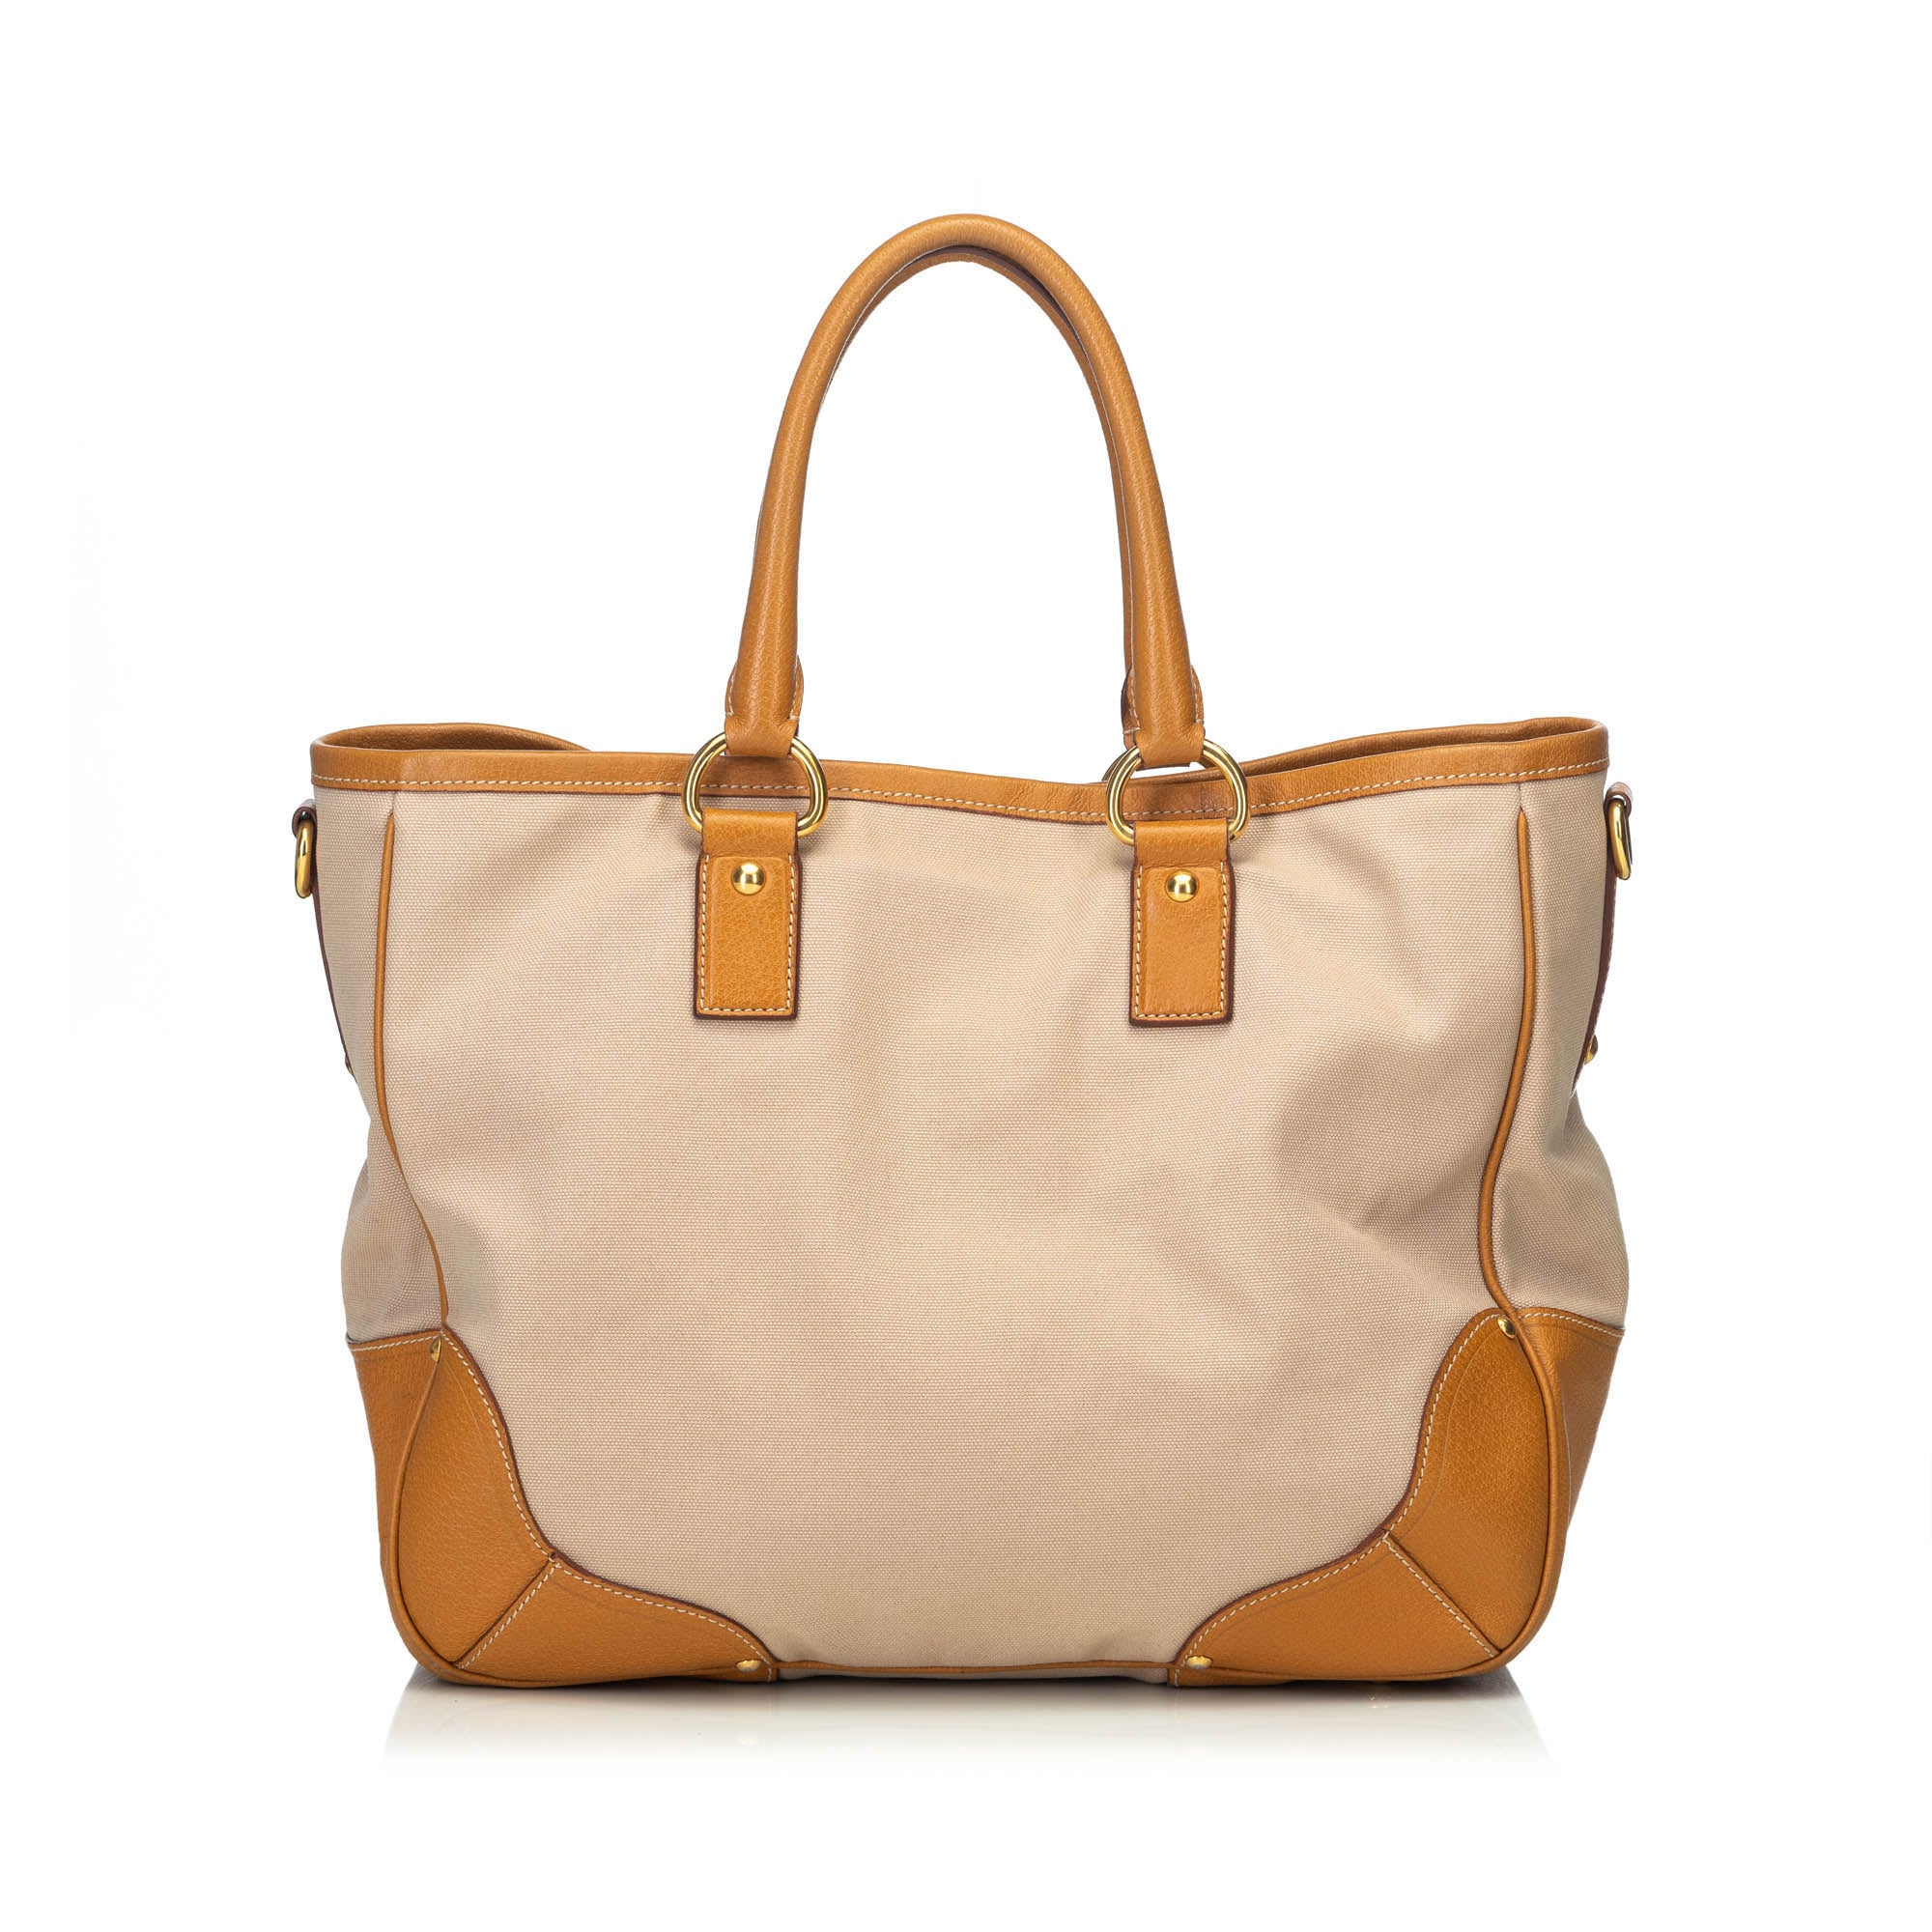 ad23c9b553d7 Prada Brown Beige Canvas Fabric Canapa Tote Bag Italy For Sale at 1stdibs